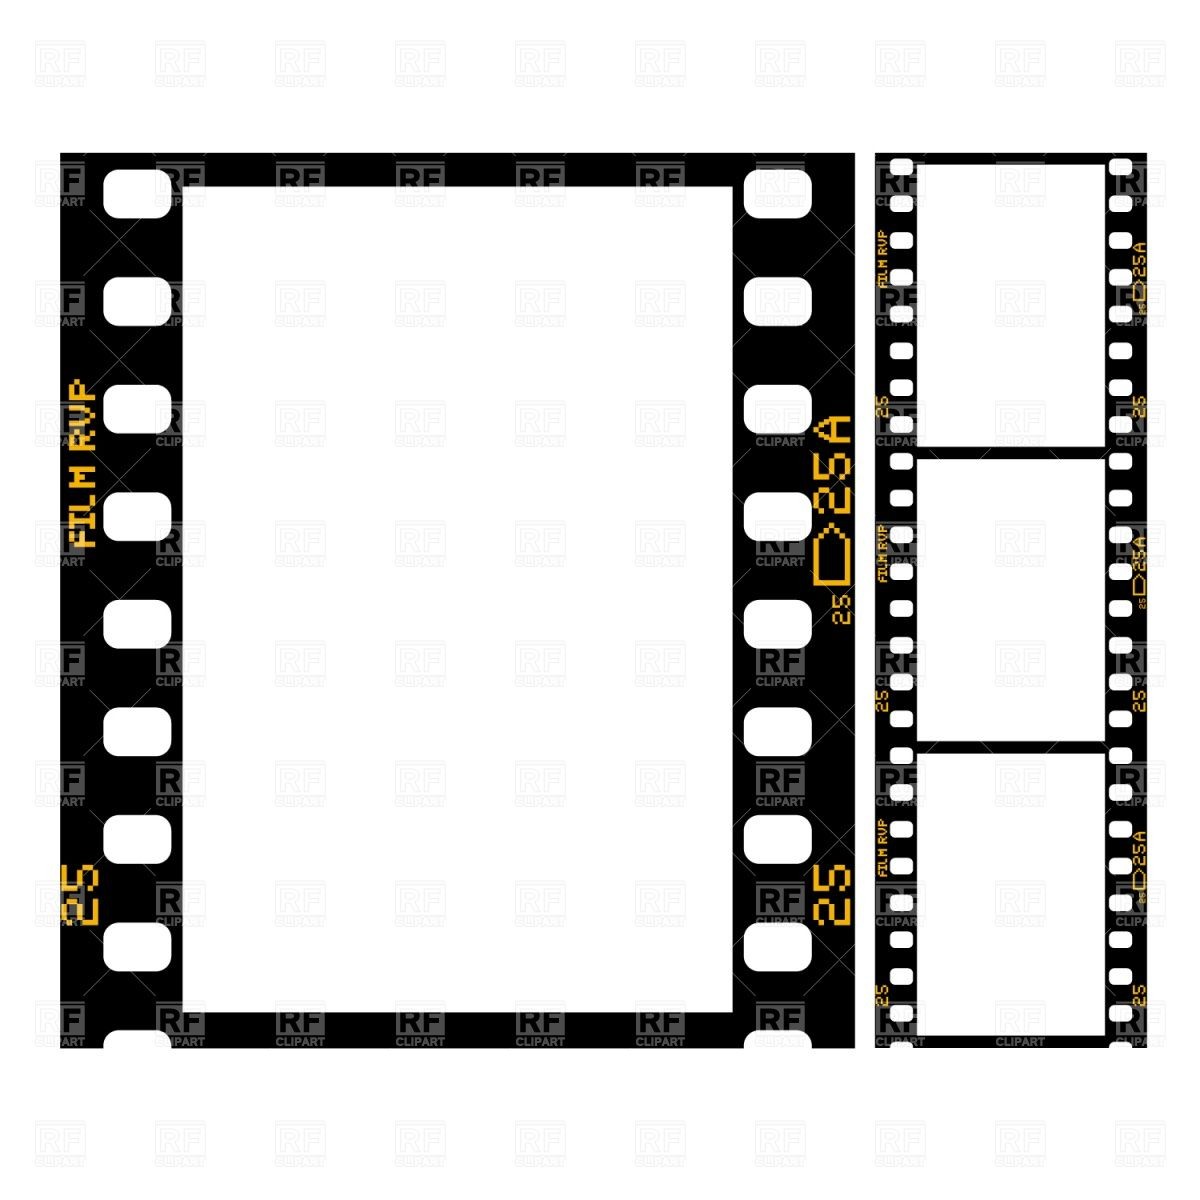 Film Strip image Template (2560px wide) from the barefoot.